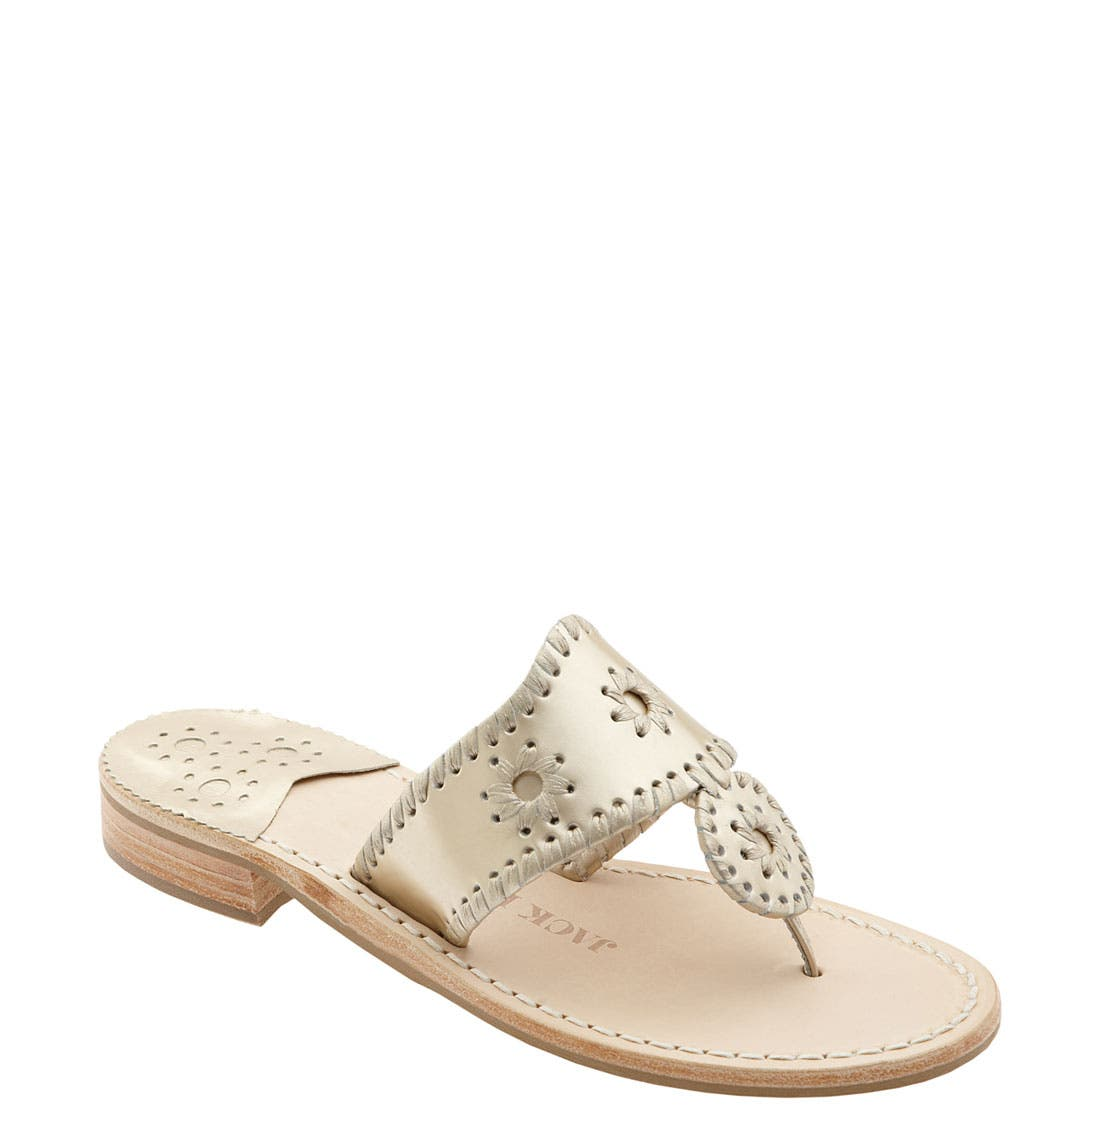 Main Image - Jack Rogers Whipstitched Flip Flop (Women)